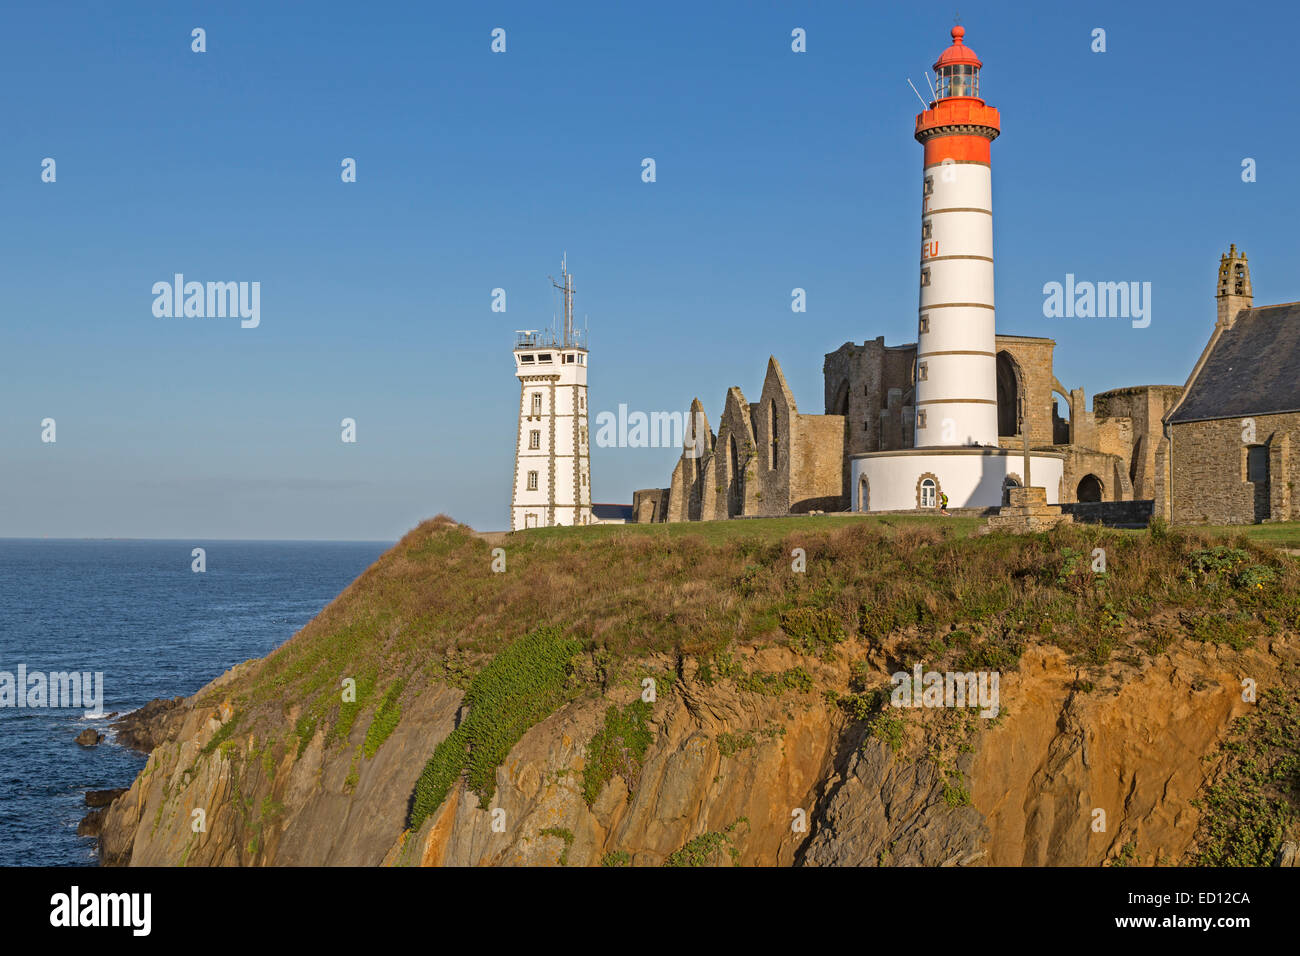 pointe de st mathieu leuchtturm mit milit rischen turm und abbey bretagne frankreich europa. Black Bedroom Furniture Sets. Home Design Ideas